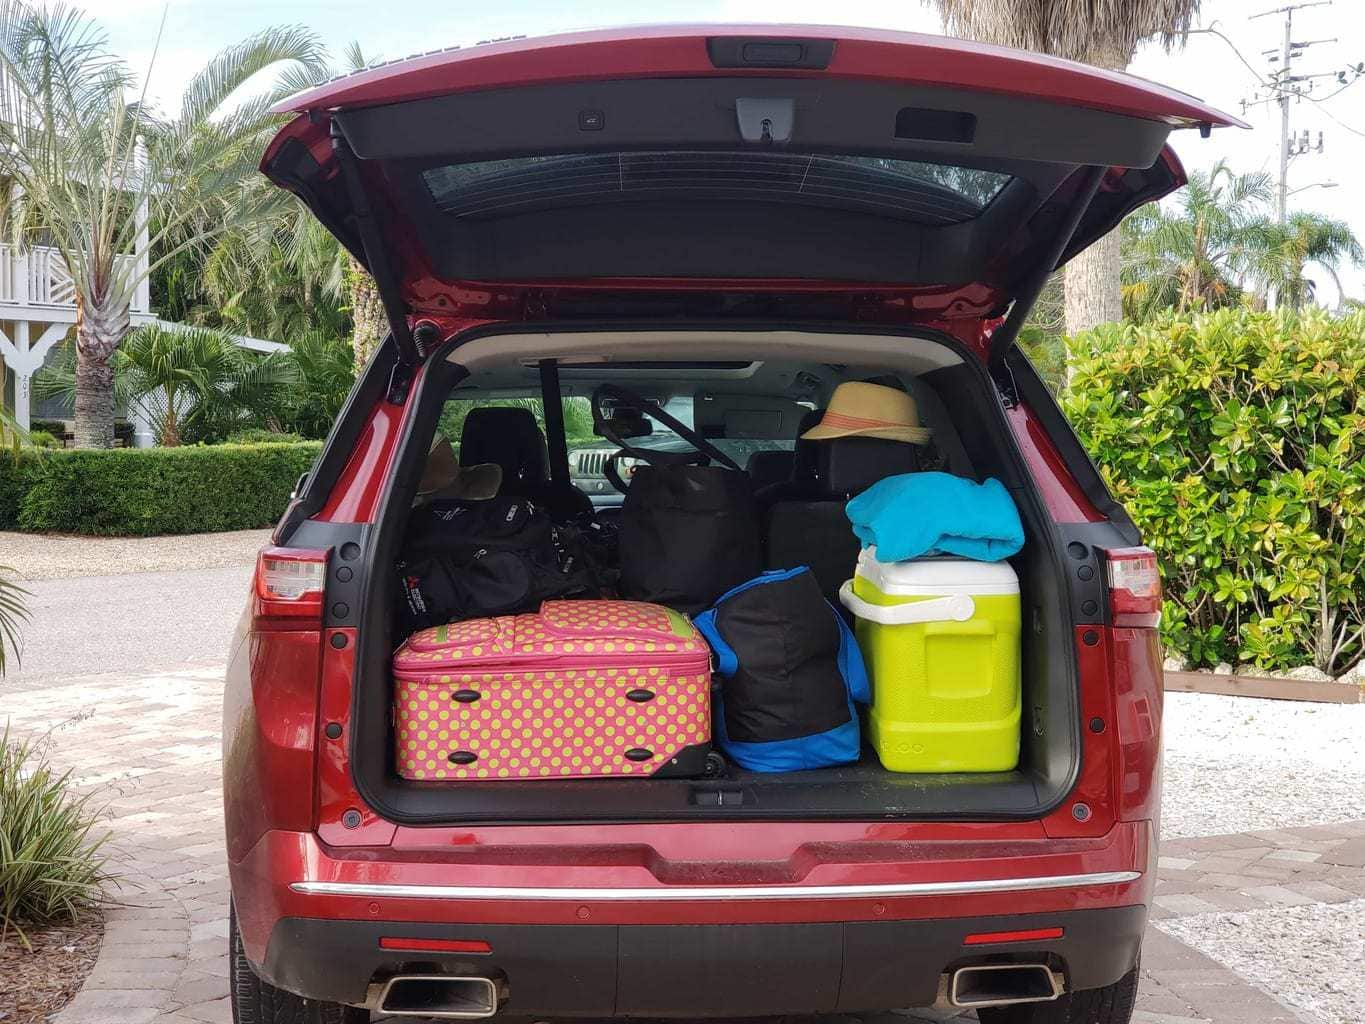 Chevy Traverse Storage Space, Chevy Traverse Car Review, 2018 Chevy Traverse